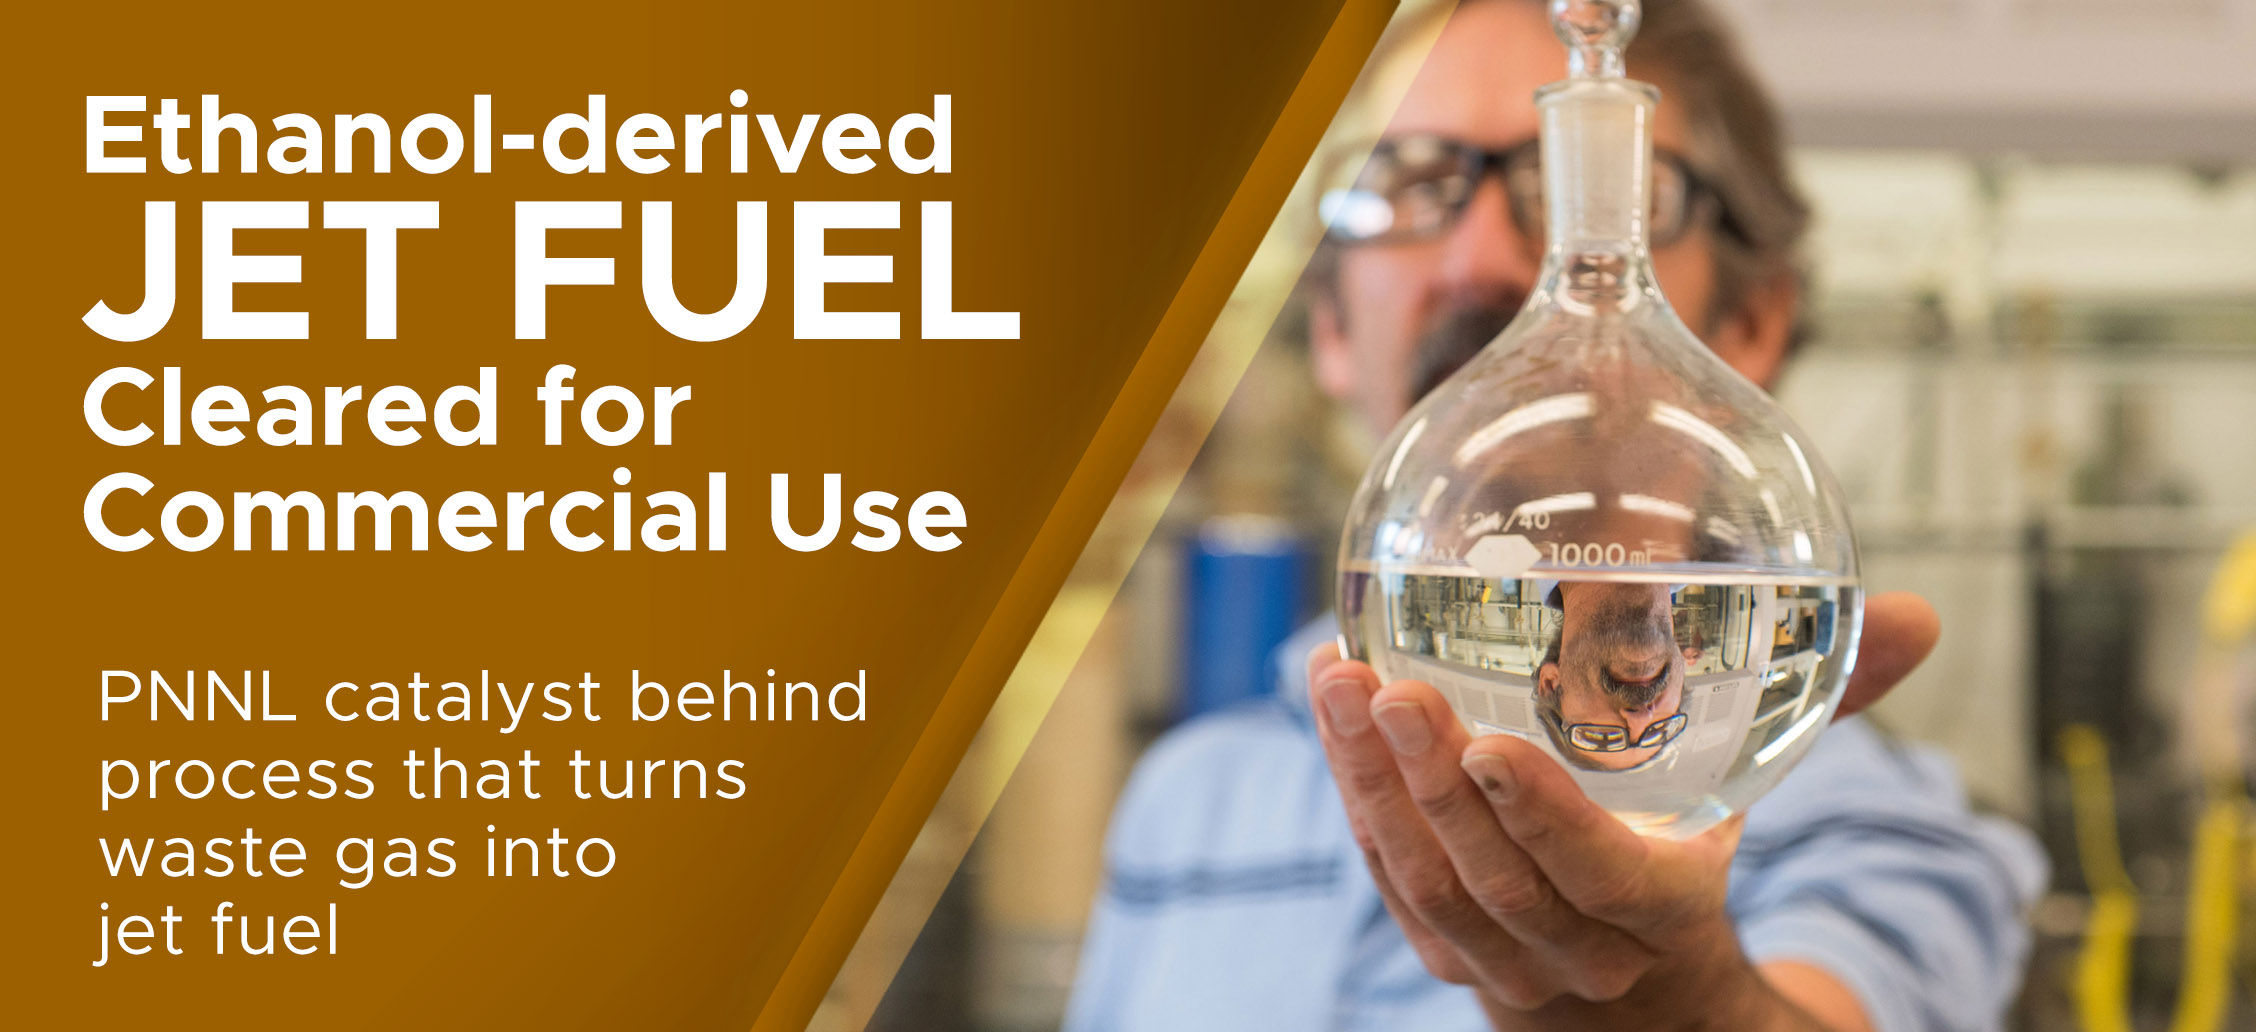 Ethanol-derived Jet Fuel Cleared for Commerical Use